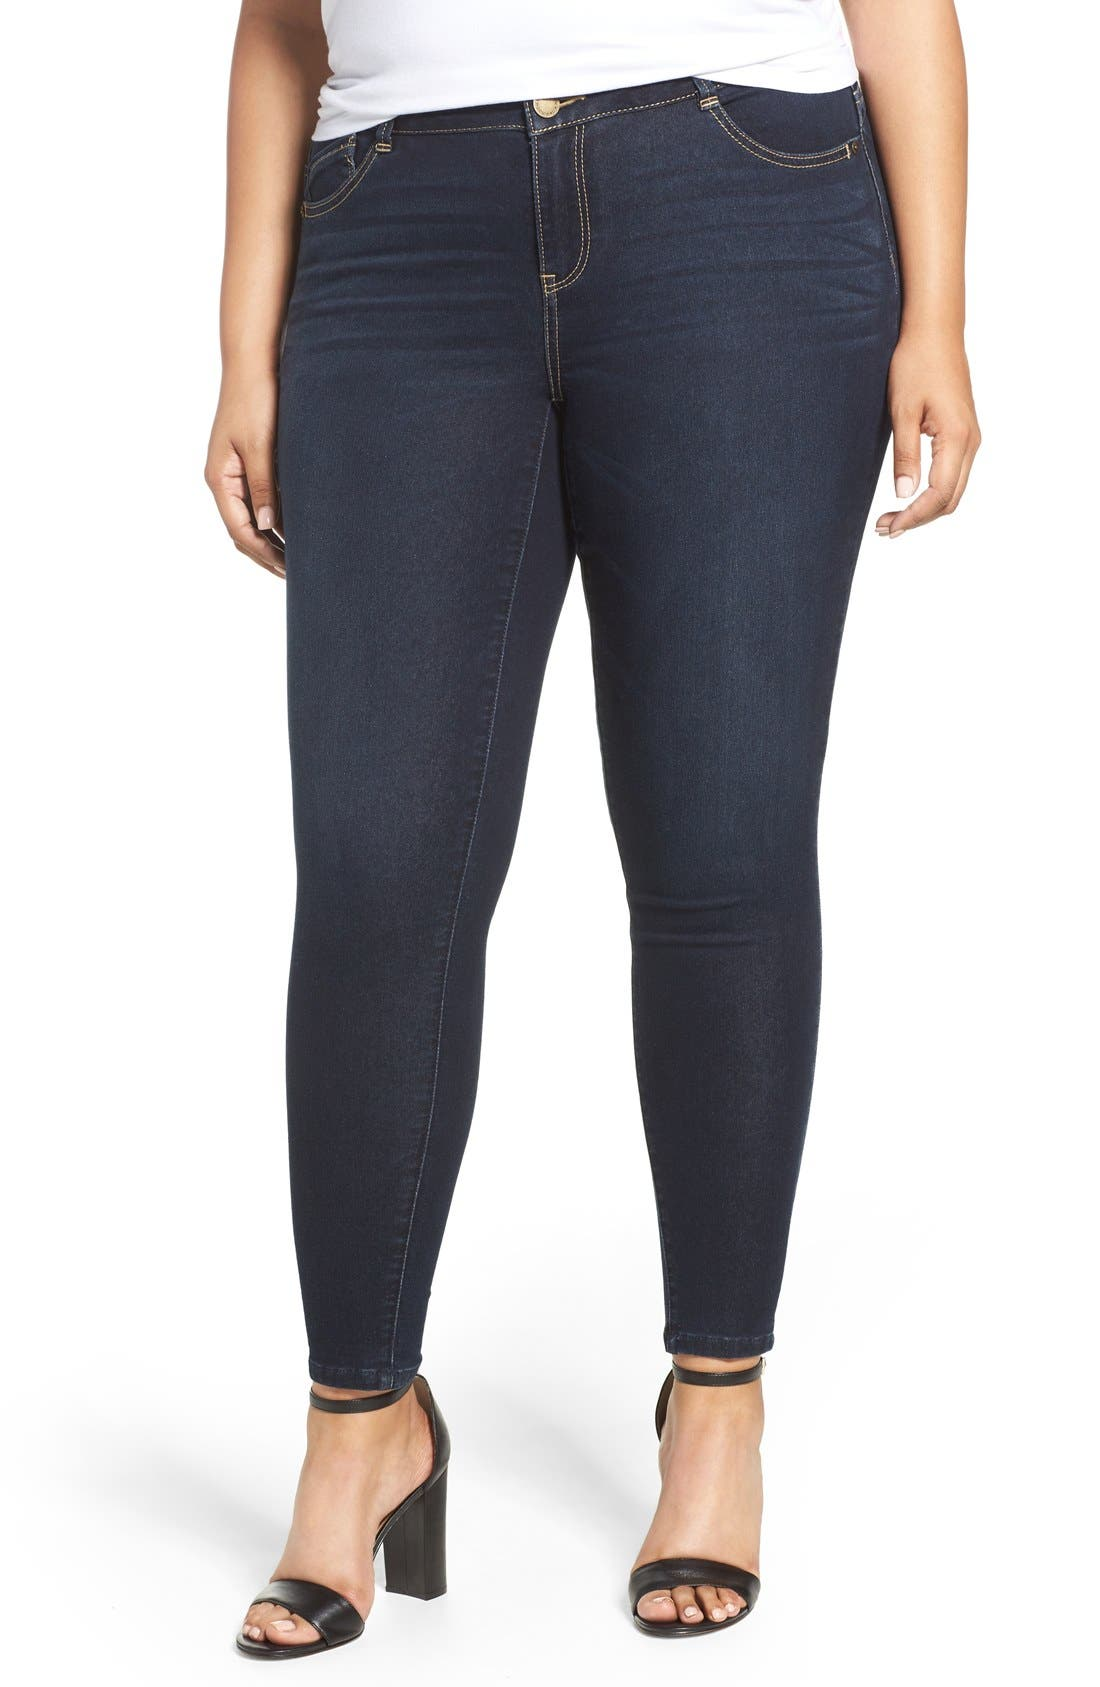 Alternate Image 1 Selected - Wit & Wisdom Stretch Skinny Jeans (Plus Size) (Nordstrom Exclusive)